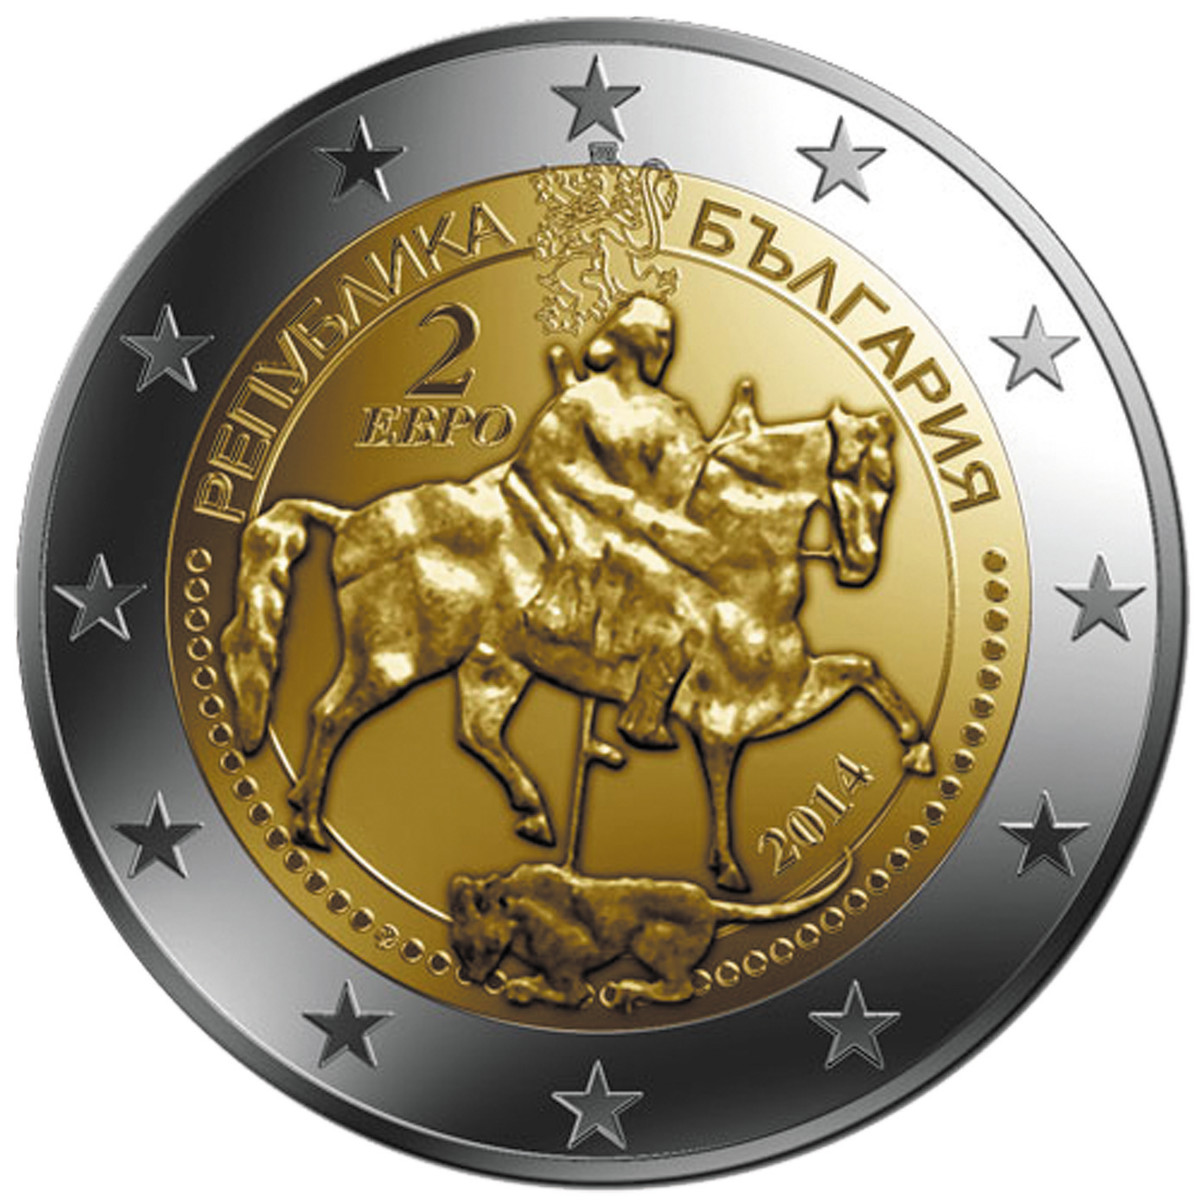 Bulgaria is seeking to join the European Union's currency union.